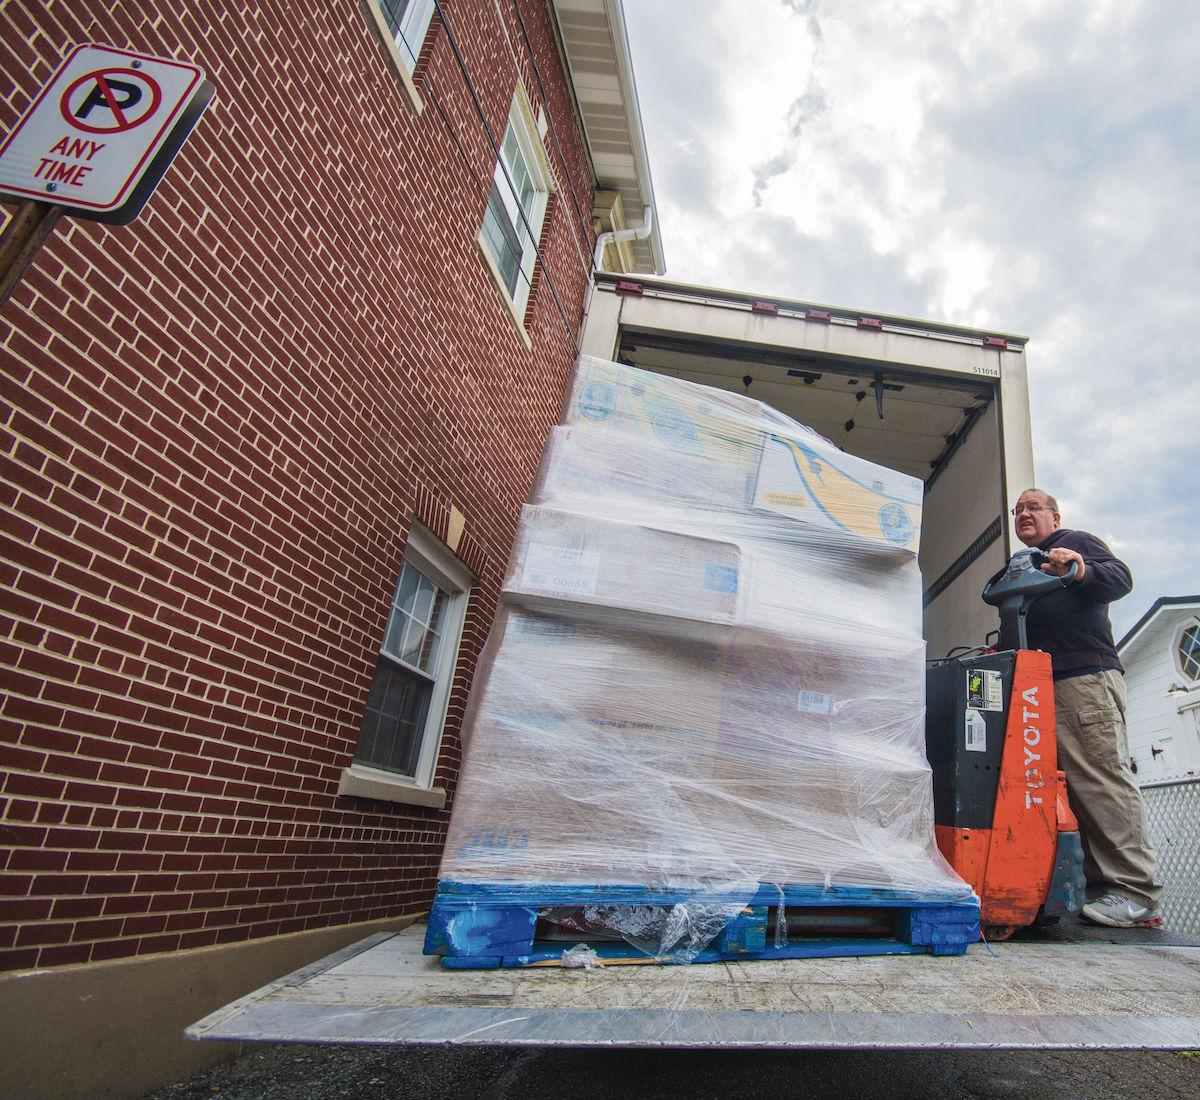 Giveaway helps families fill pantries